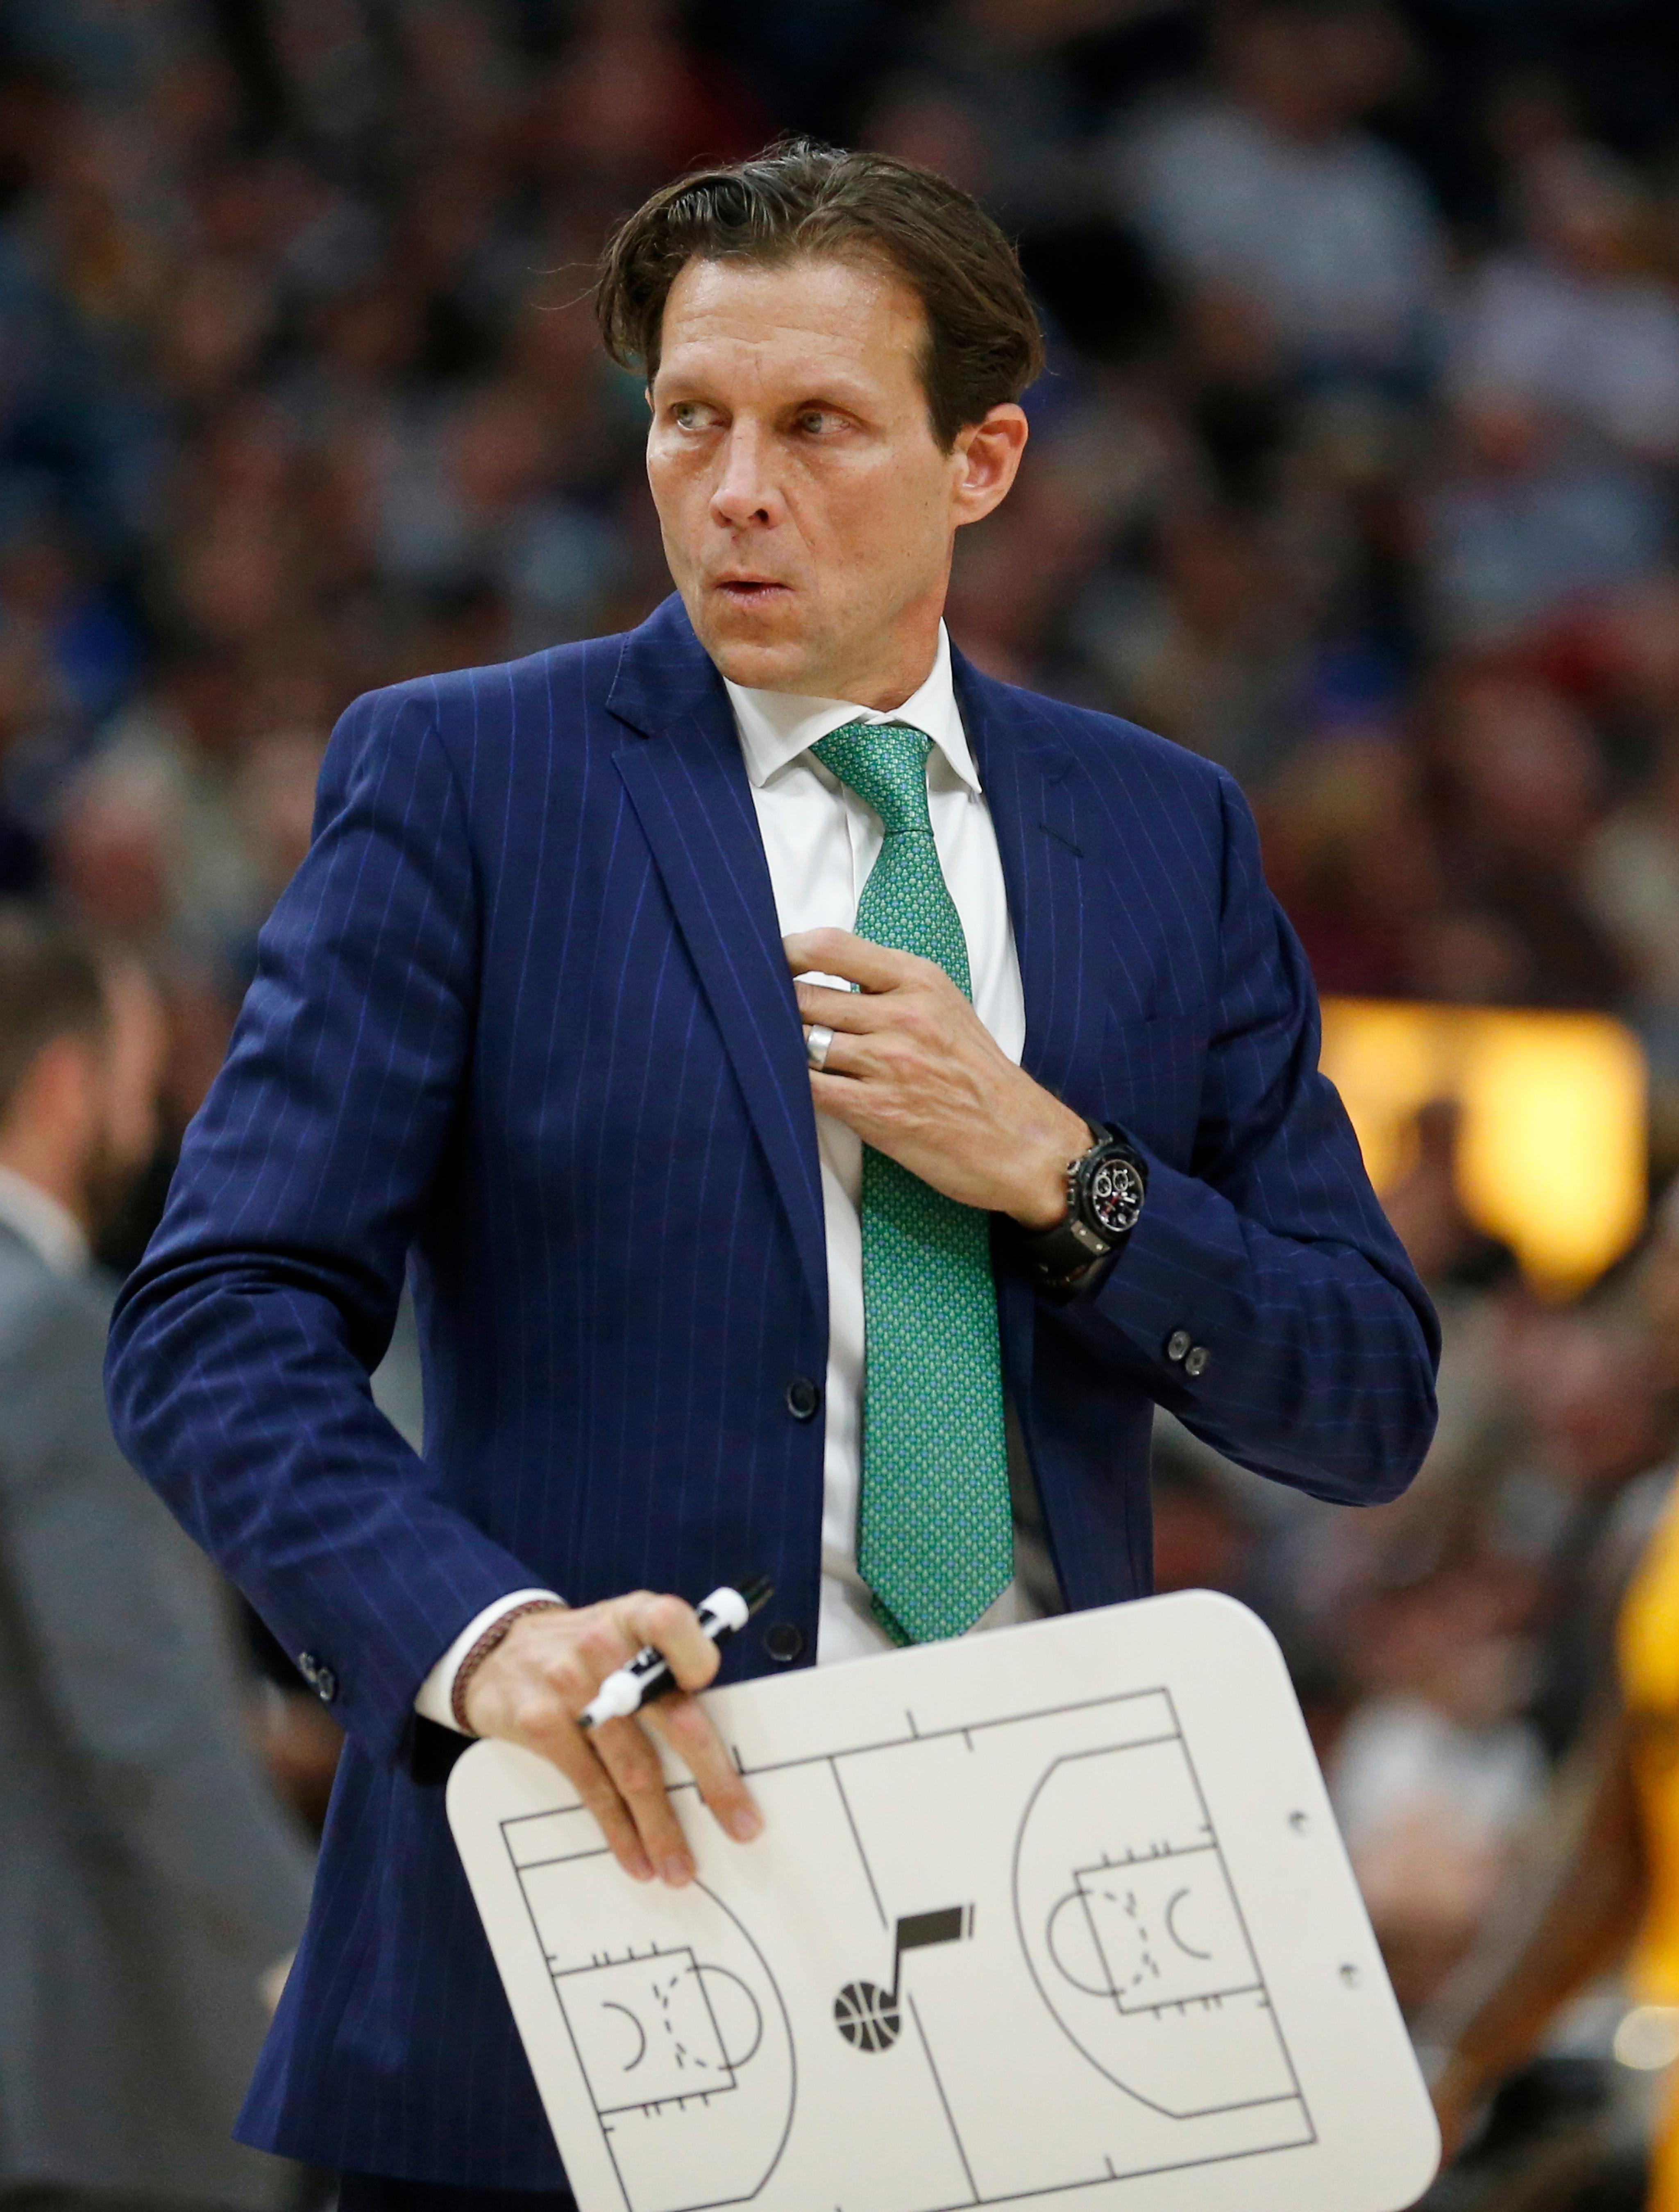 Utah Jazz head coach Quin Snyder looks on in the first half during an NBA basketball game against the Toronto Raptors Monday, Nov. 5, 2018, in Salt Lake City. (AP Photo/Rick Bowmer)